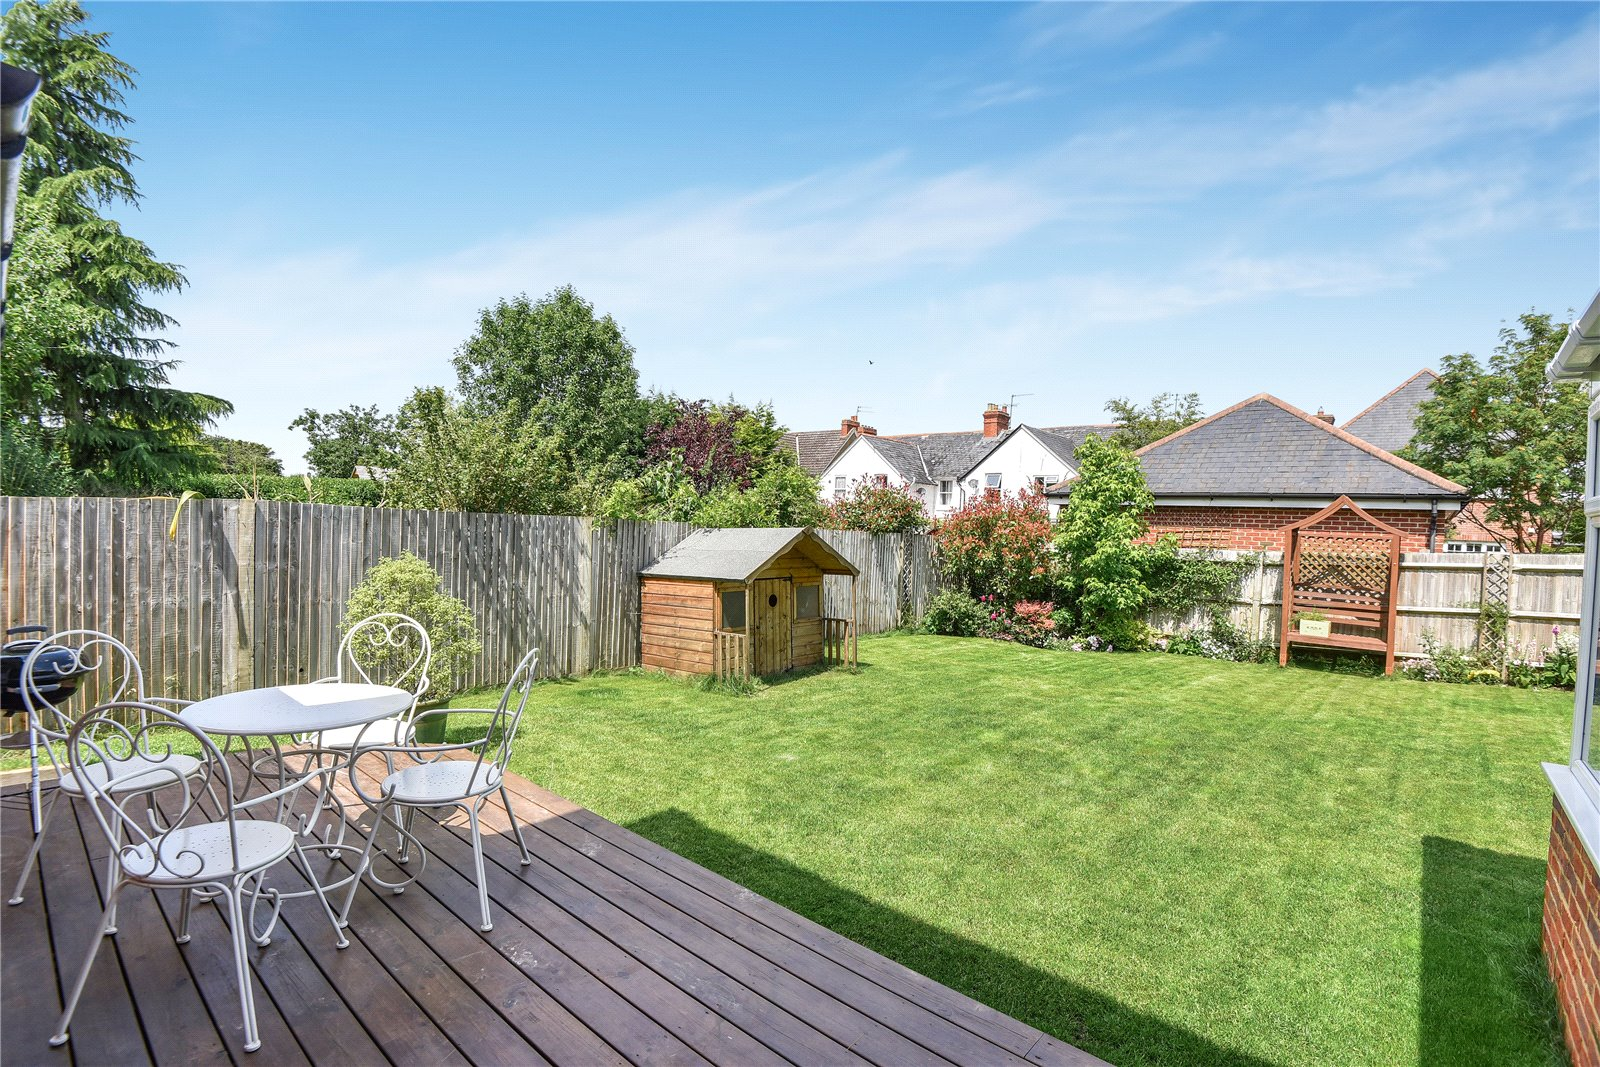 4 Bedrooms Detached House for sale in Huxtable Gardens, Maidenhead, Berkshire, SL6